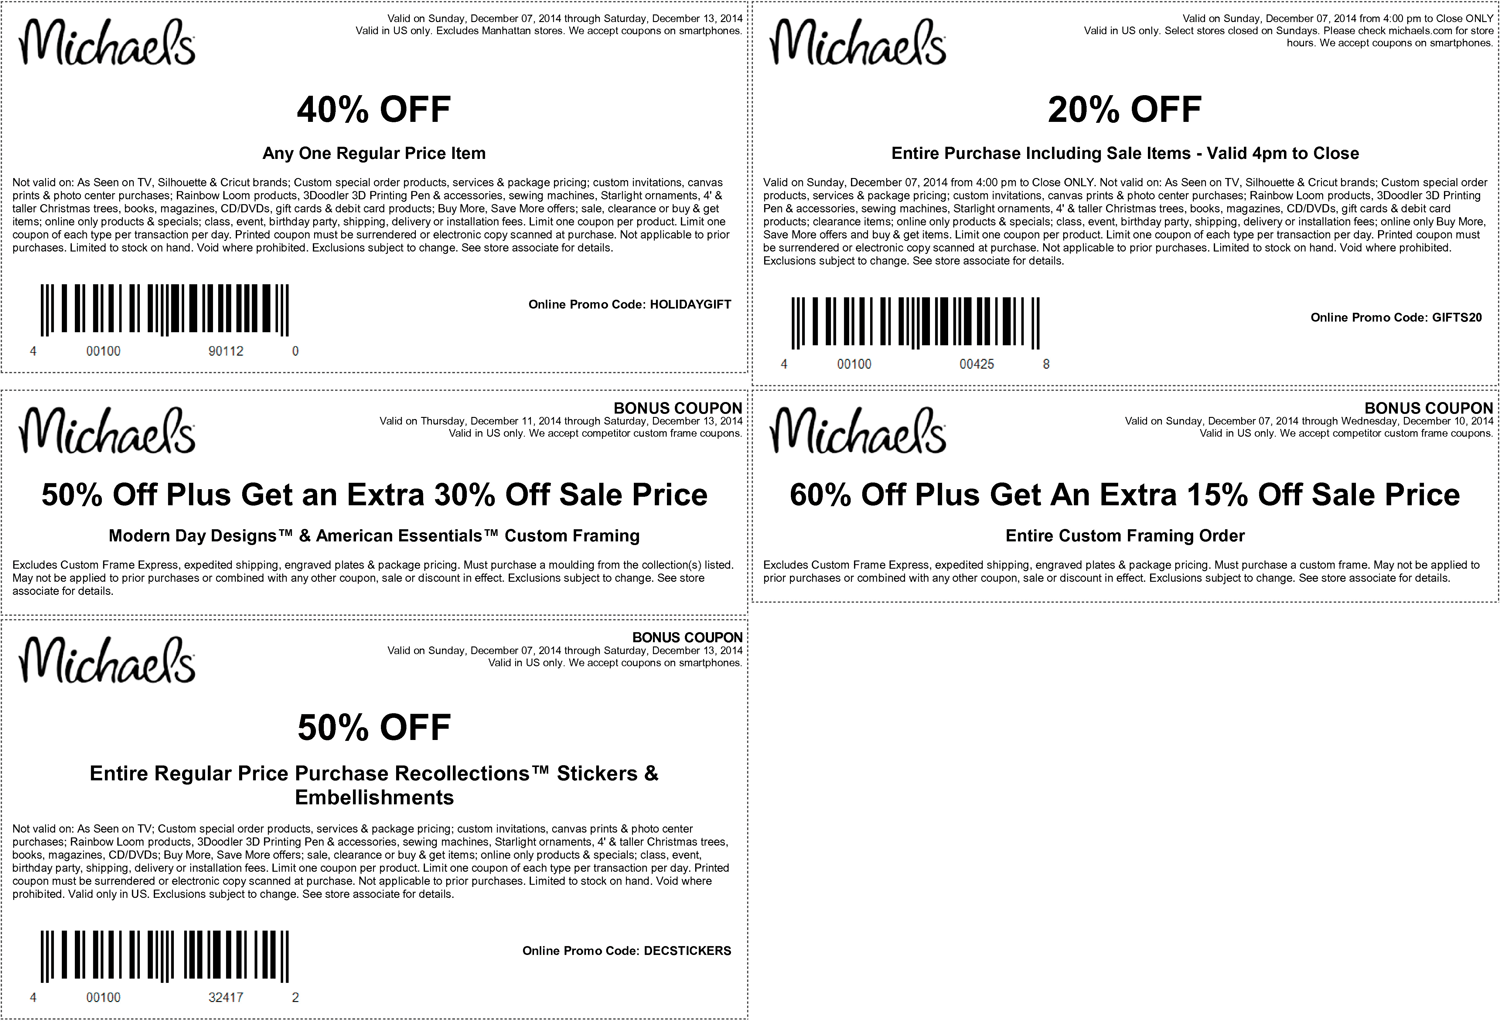 Michaels Coupon May 2018 20% off everything, 40% off a single item at Michaels, or online via promo code HOLIDAYGIFT